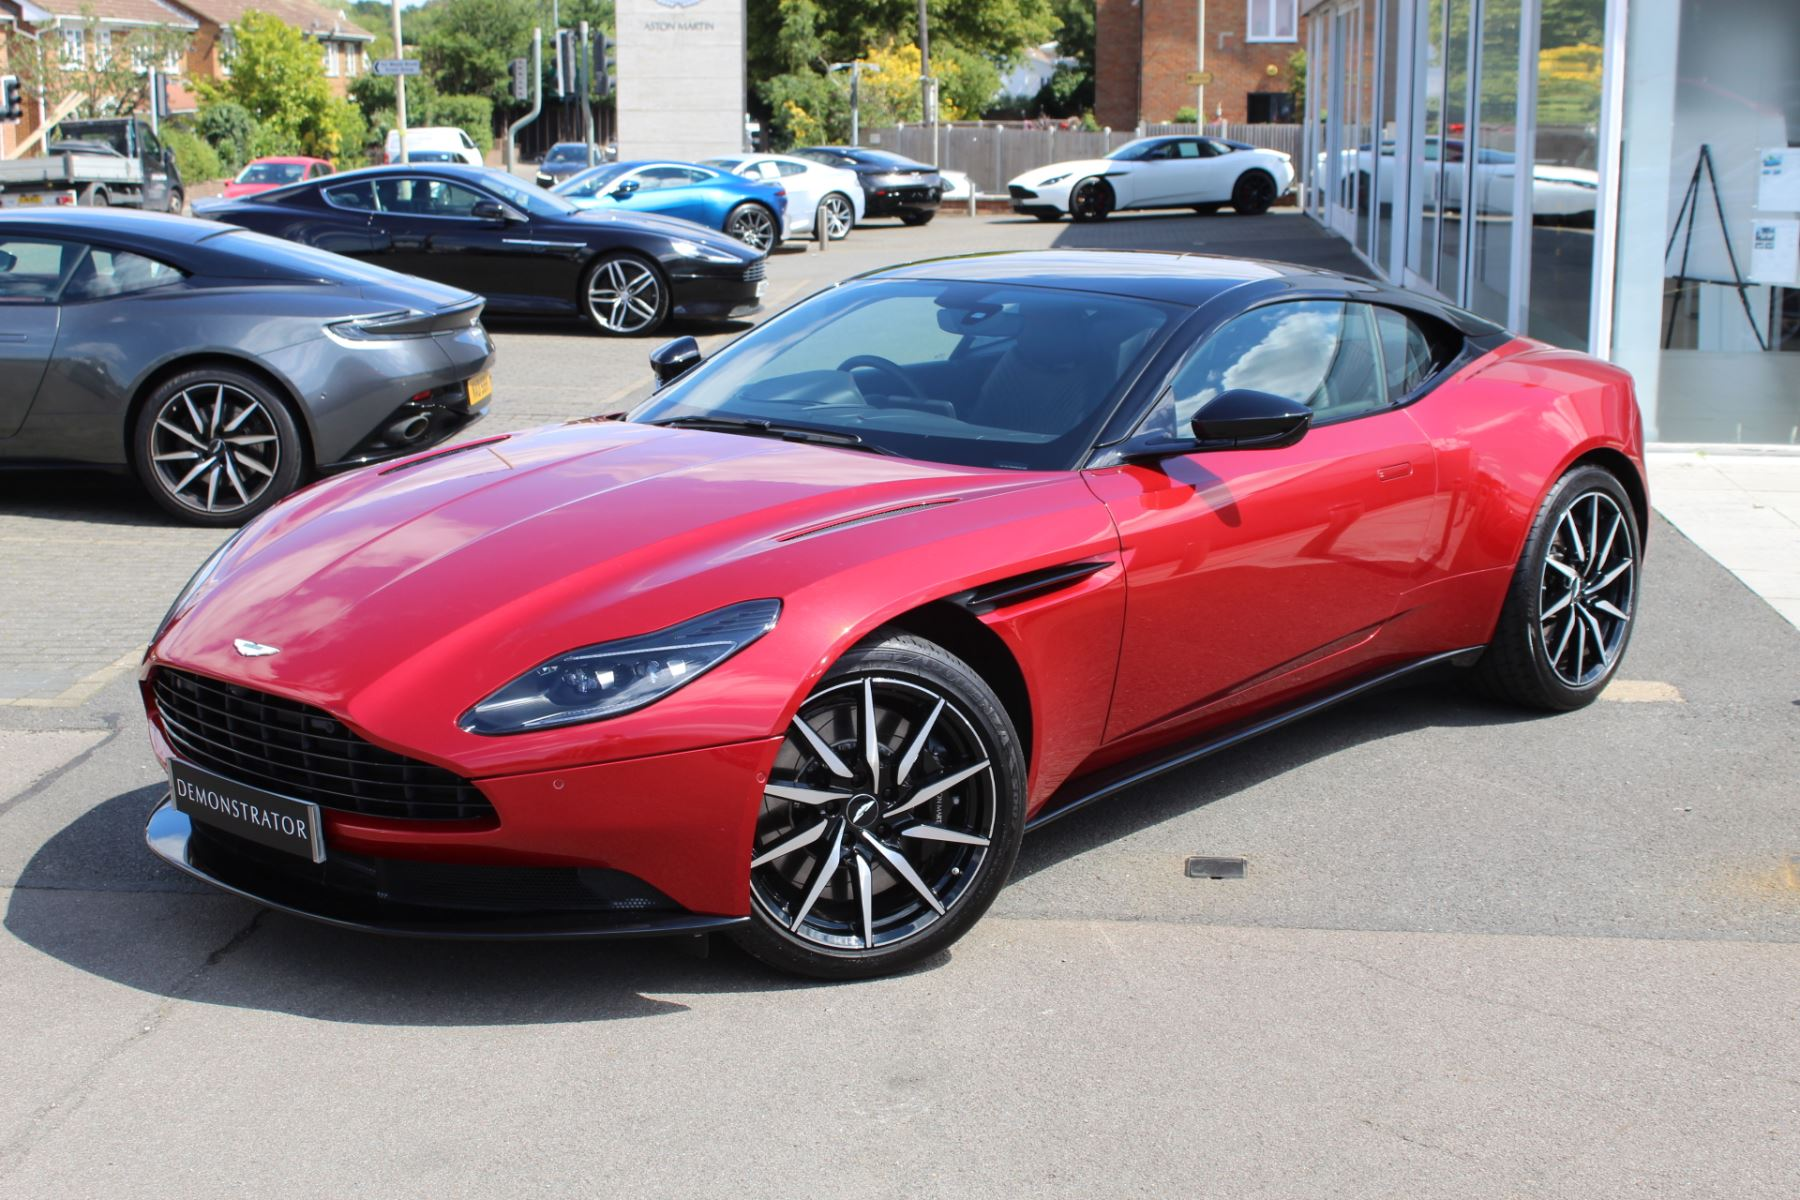 Aston Martin DB11 V8 2dr Touchtronic image 3